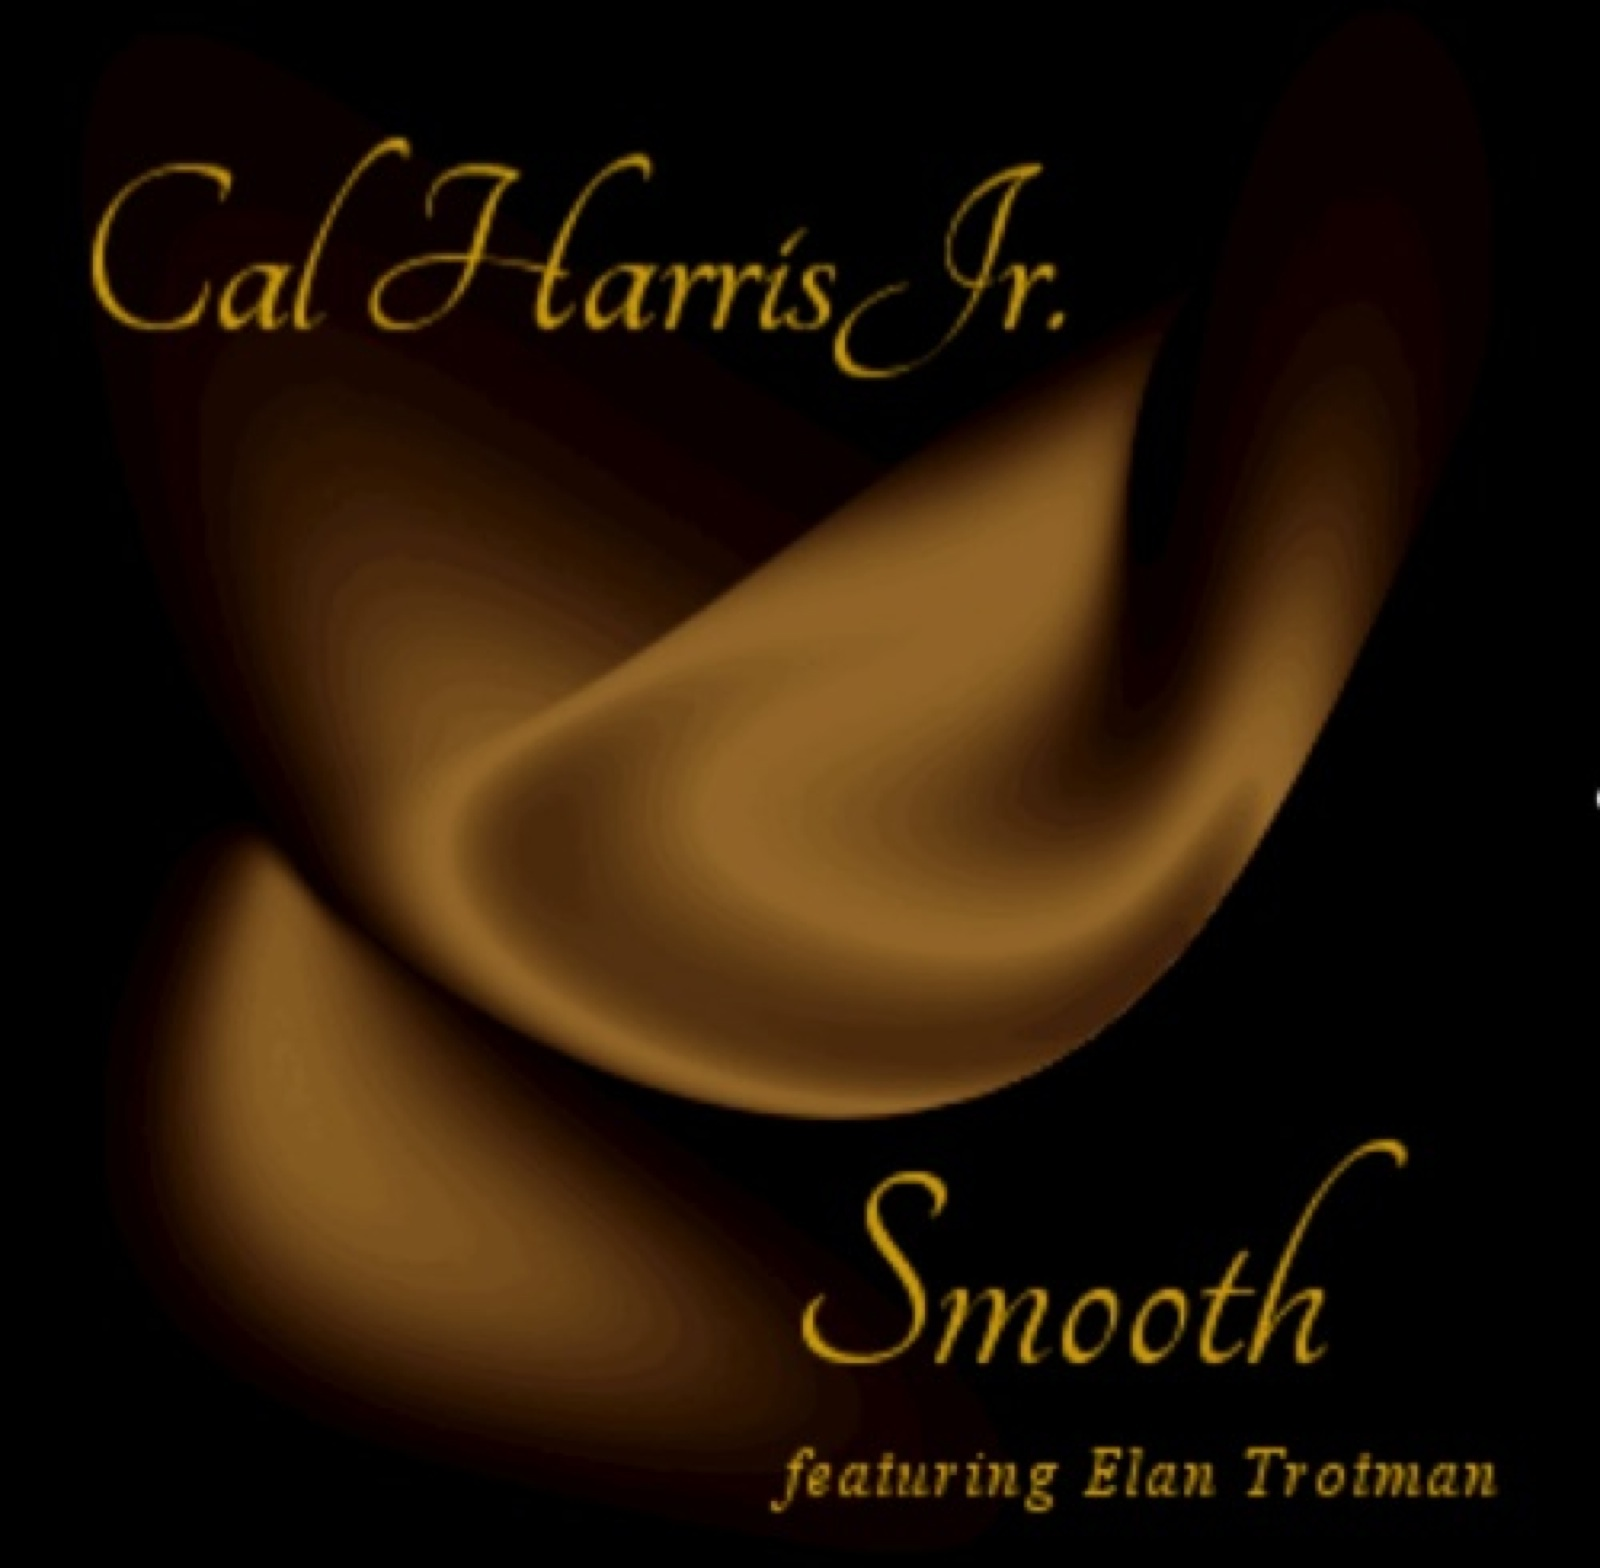 Smooth feat. Elan Trotman